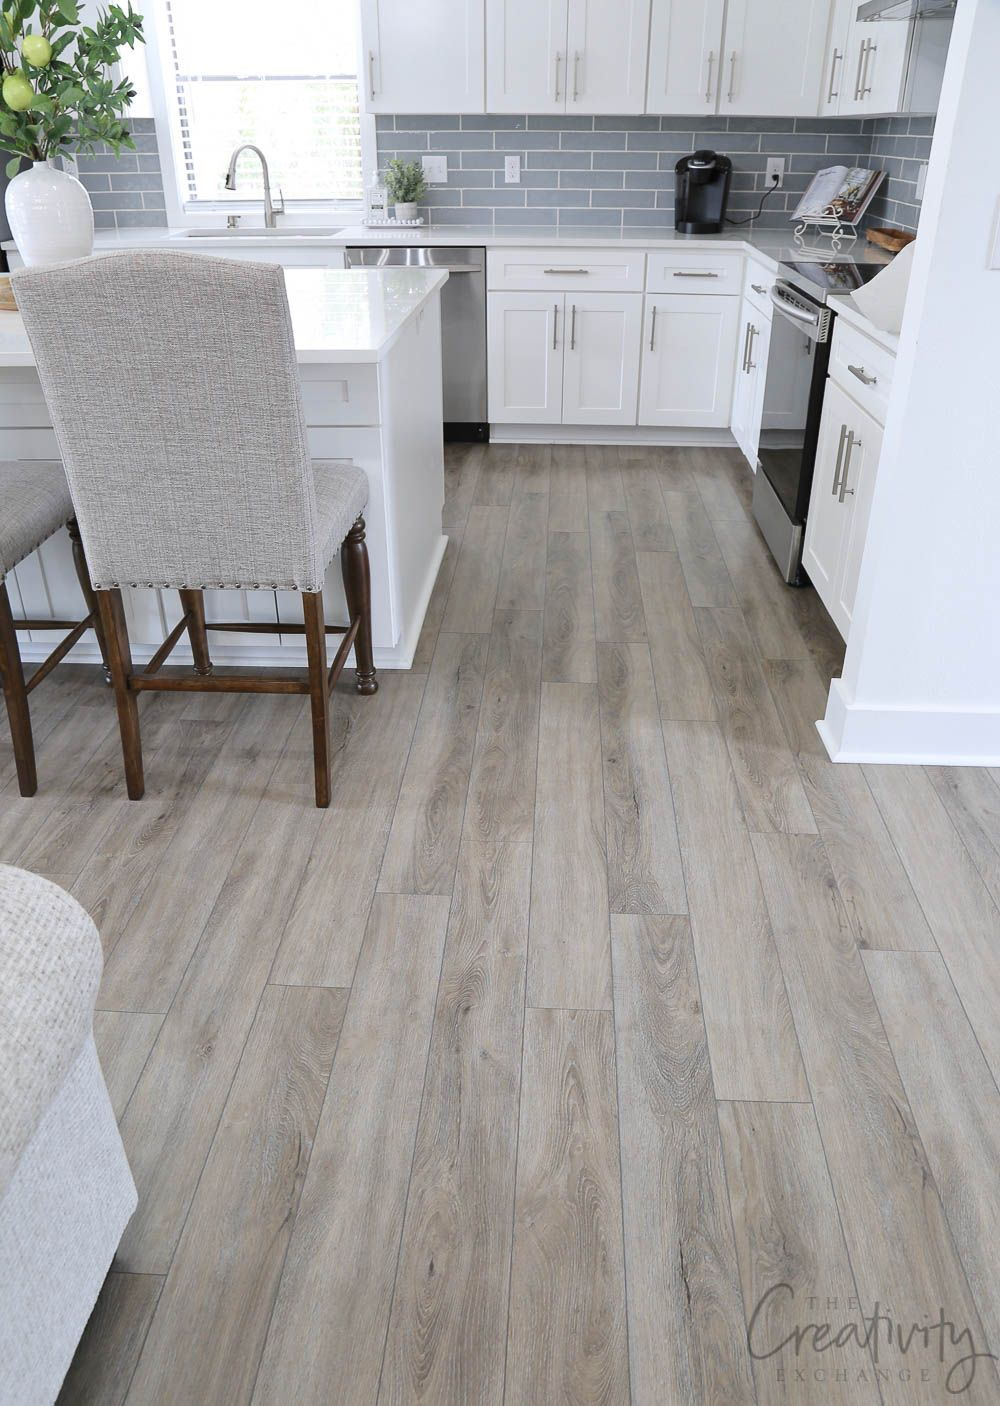 Amazing Remodel Transformation Client Project Reveal Remodel Home Remodeling Flooring